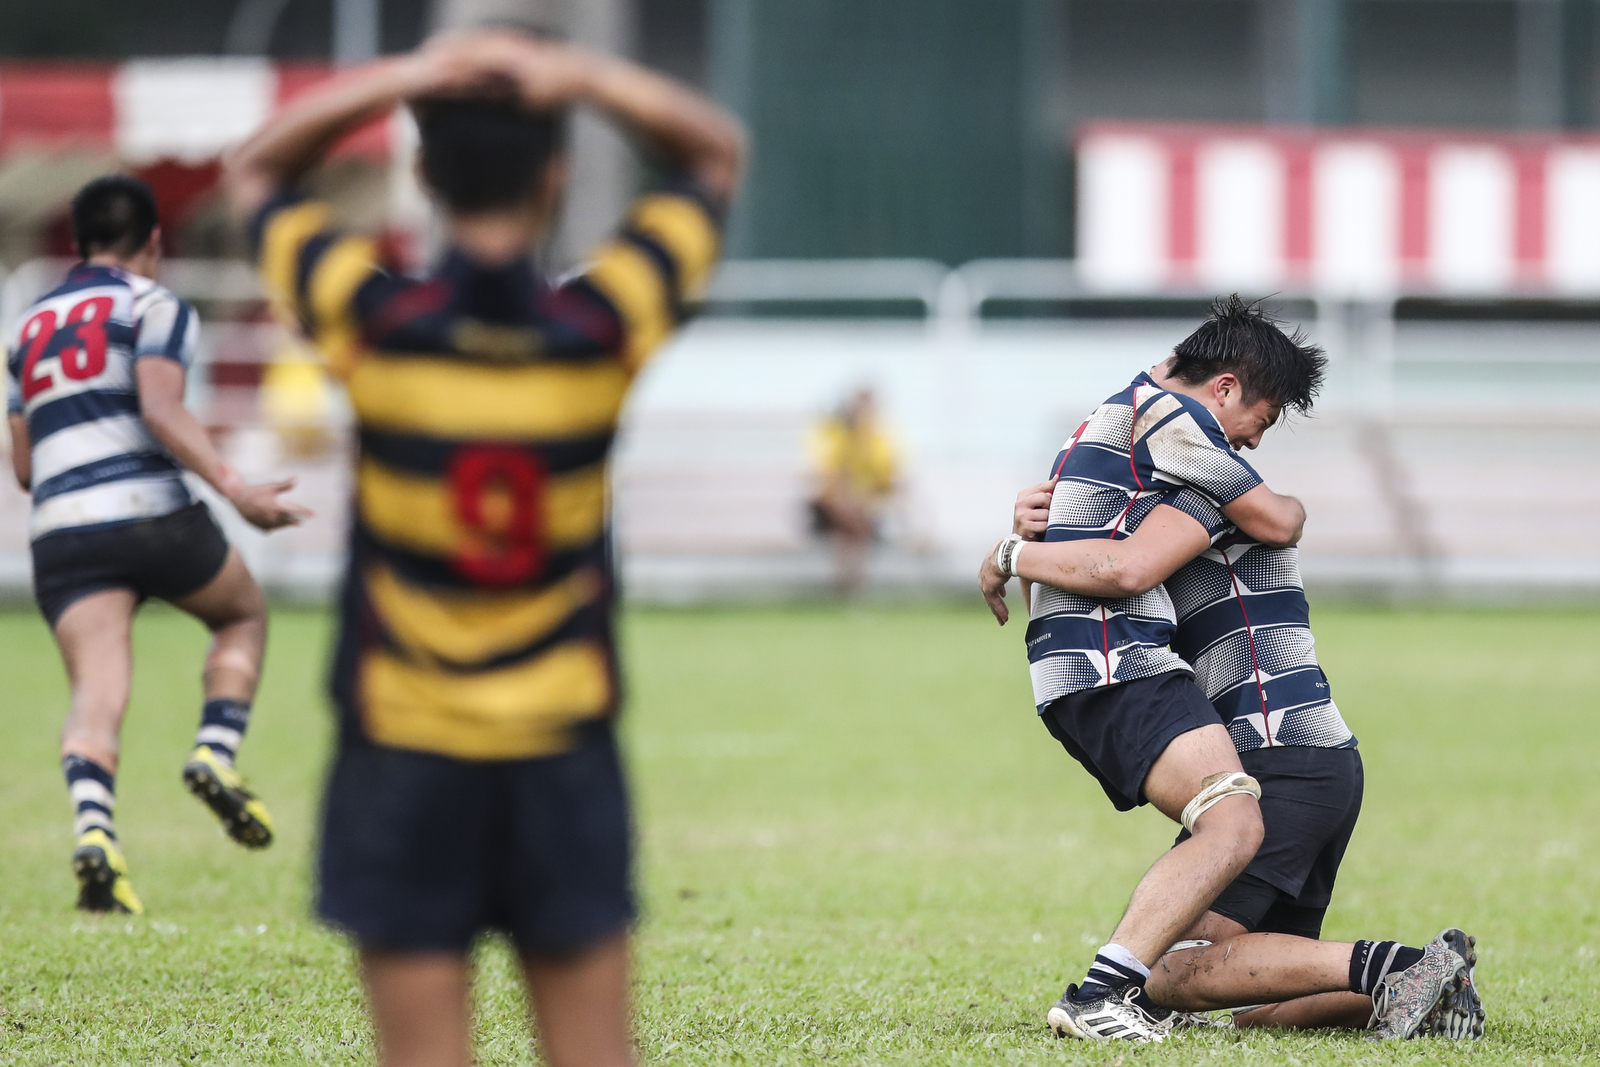 Marcus Chan and James Batt (right)of St. Andrew's Secondary School celebrate their win against Anglo-Chinese School (Independent)during the National Schools boys' 'B' Division rugby final at Queenstown Stadium on March 28,2018 in Singapore. (Photo © Yong Teck Lim/Red Sports)